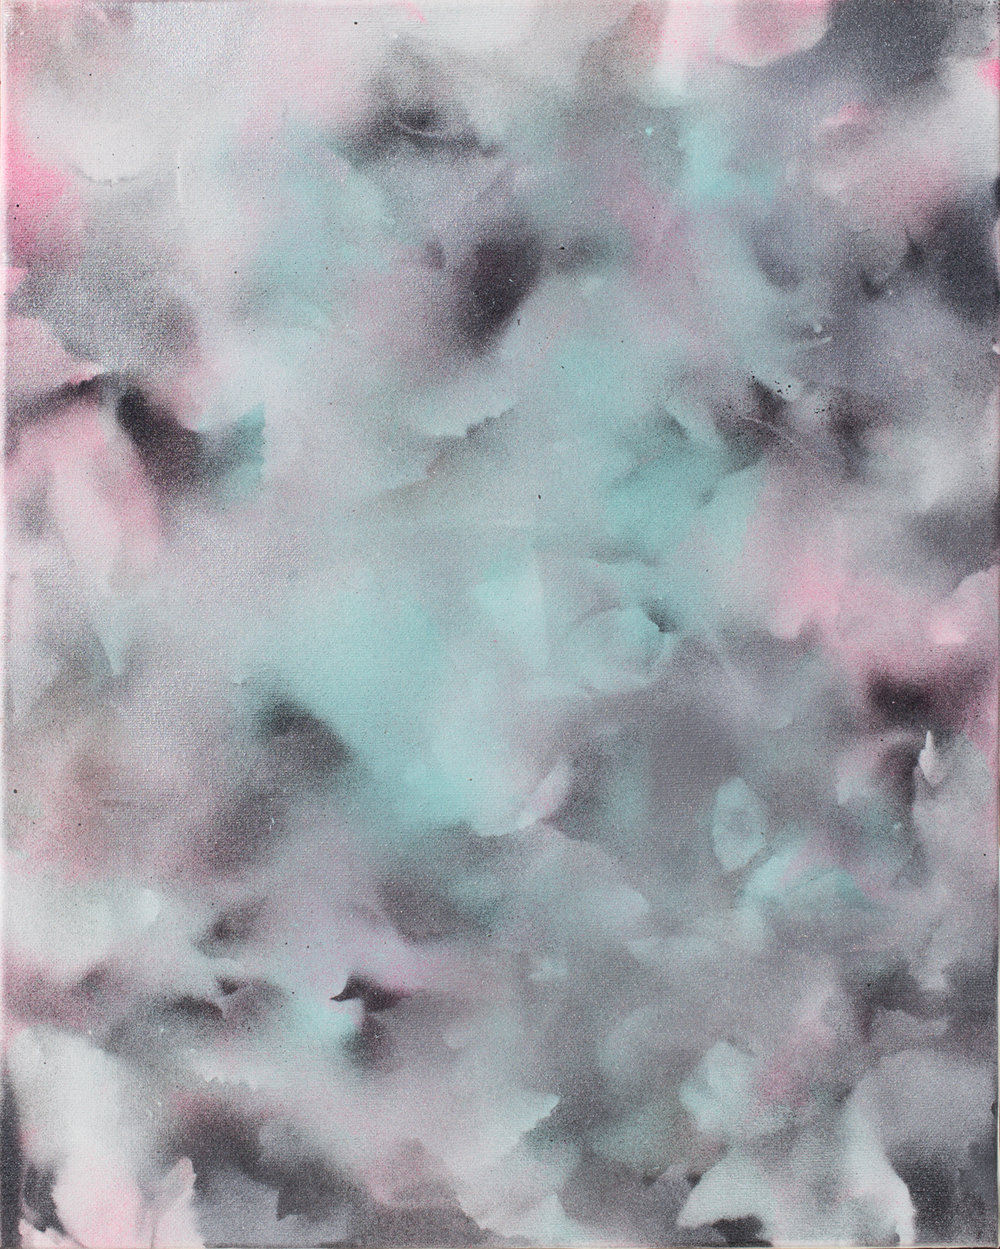 Untitled, 2016  C-print of Enamel on Canvas Painting